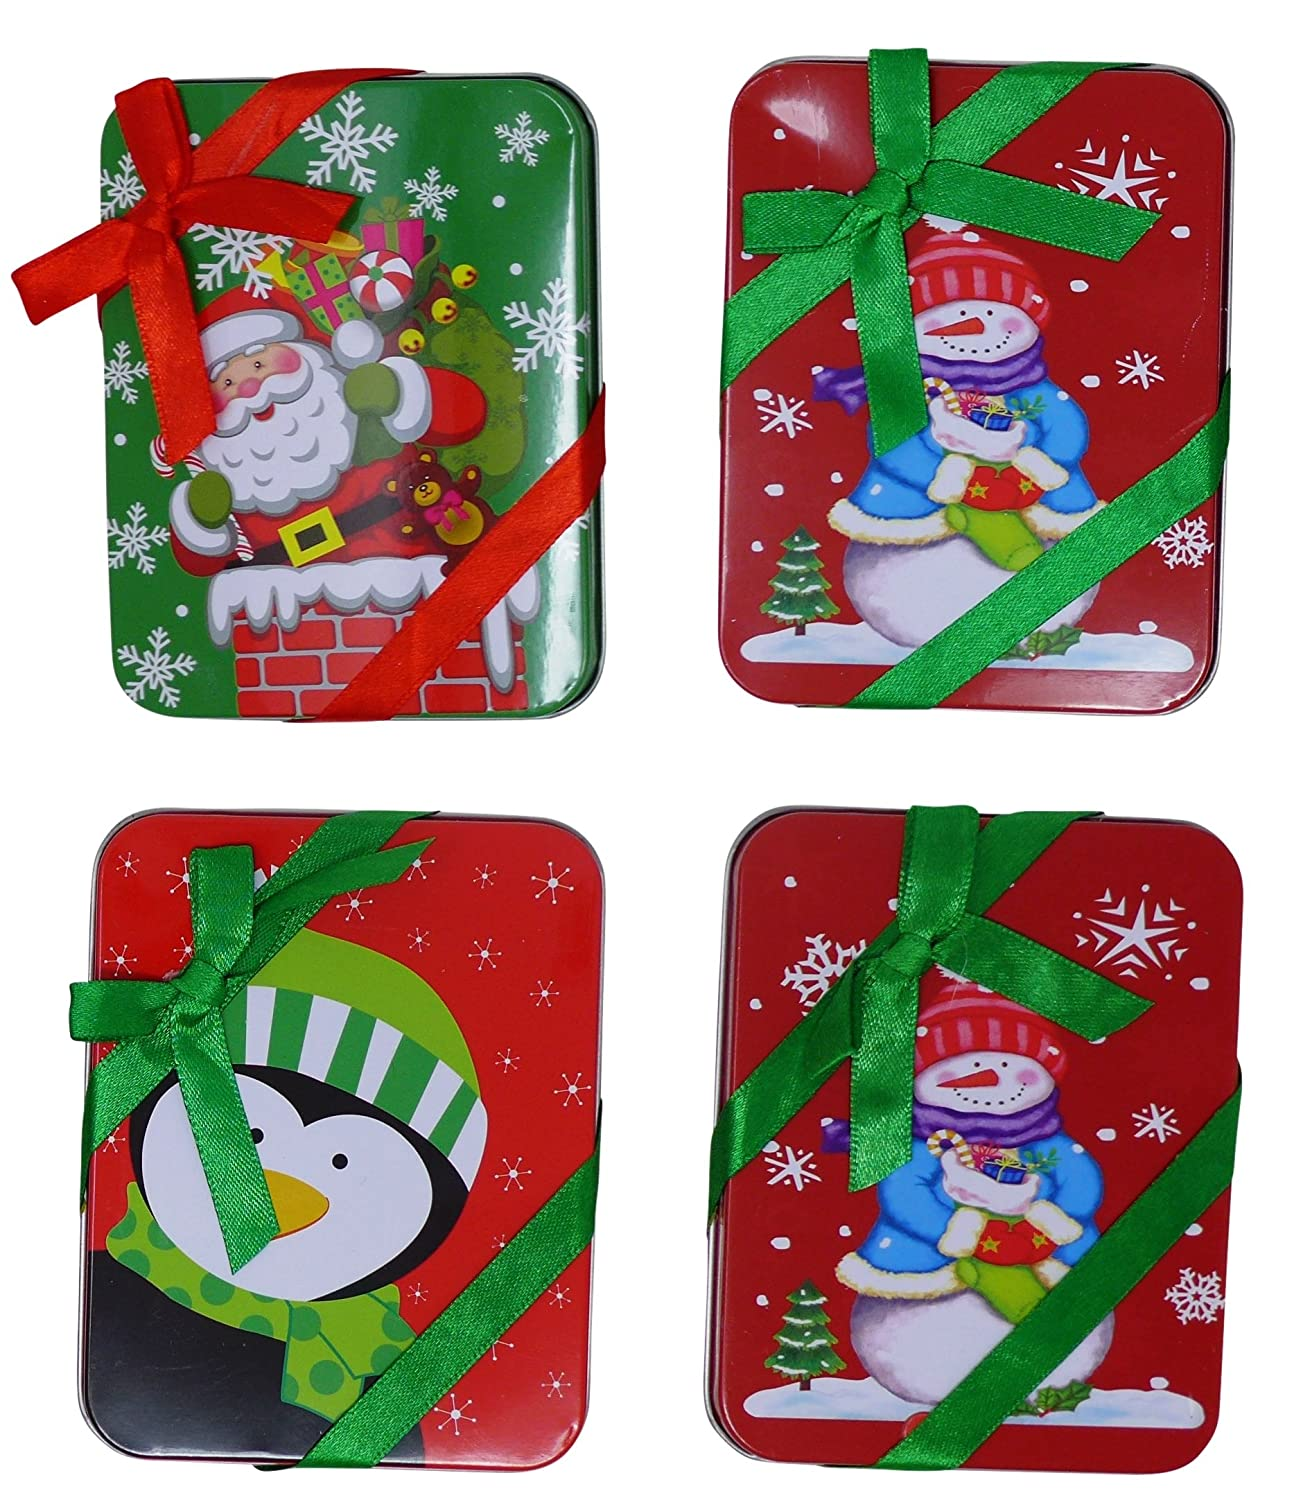 4 Christmas Gift Card Tin Holder With Ribbon (4.5\' X 3.5\') | Stylish Gift Card Boxes Set, Santa & Snow Man Gift Boxes Pride Products